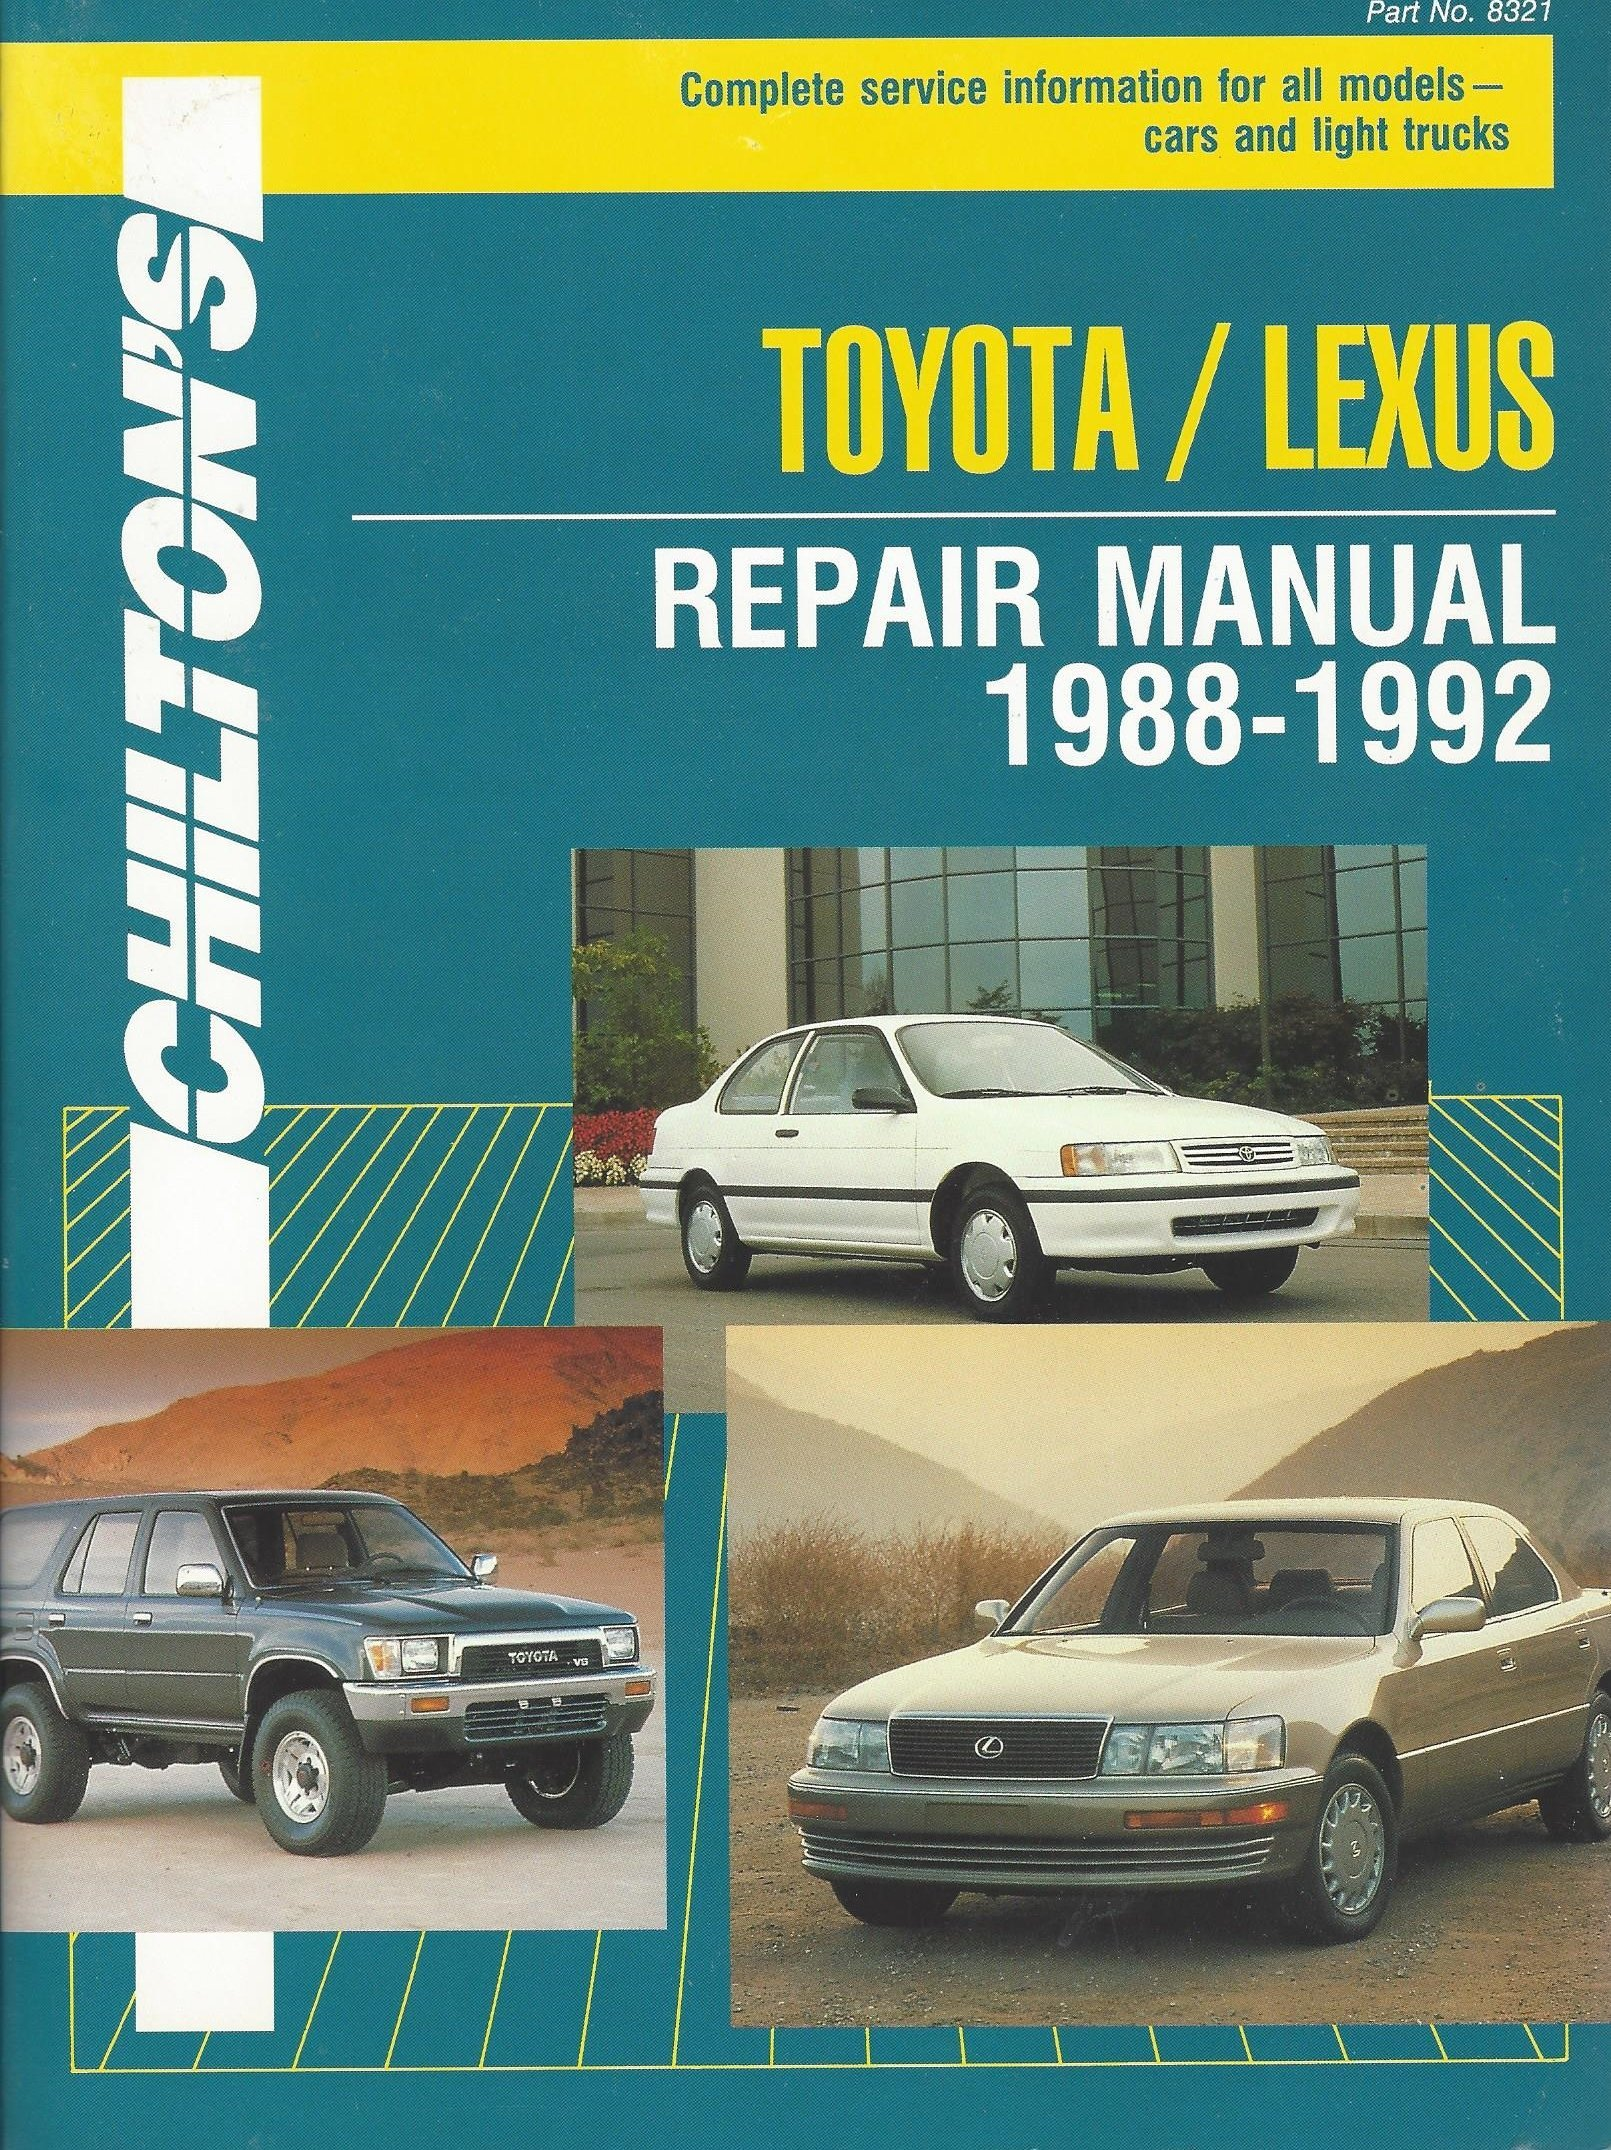 Chilton's Toyota/Lexus Repair Manual, 1988-1992: Complete Service  Information for All Models--Cars and Light Trucks: Kerry A. Freeman:  9780801983214: ...